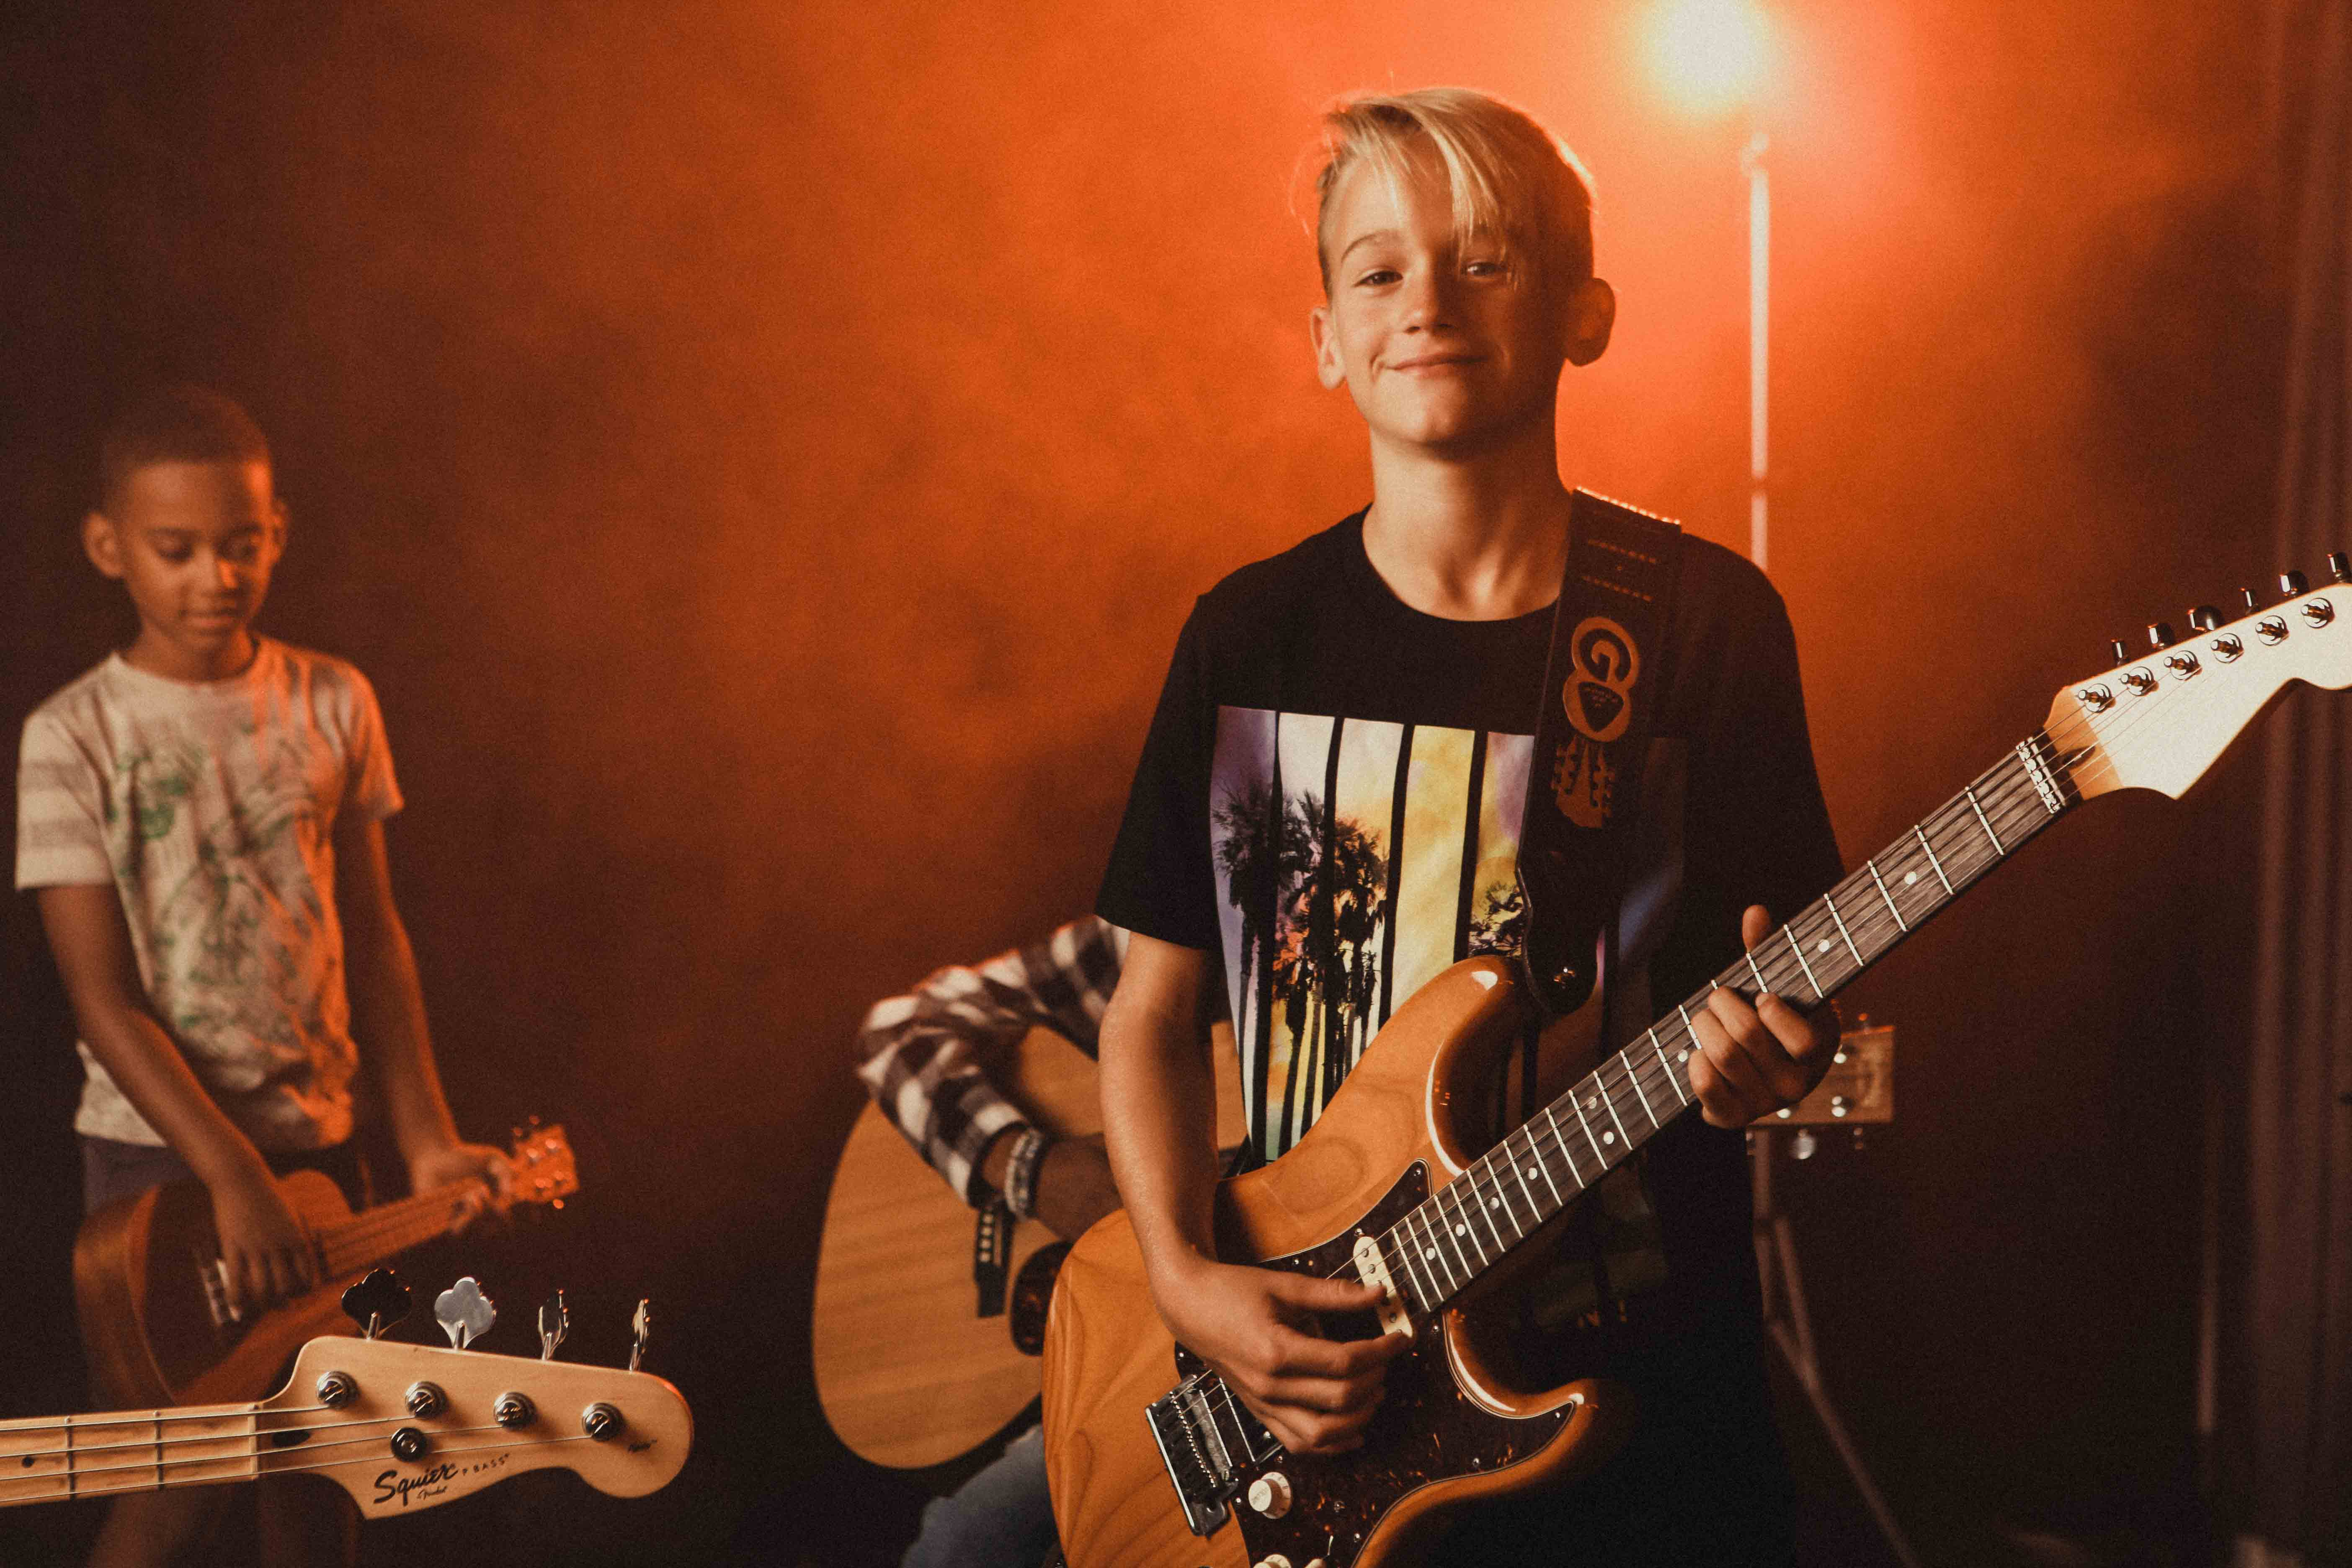 Kid with a bass guitar smiling with orange smoke and light behind them